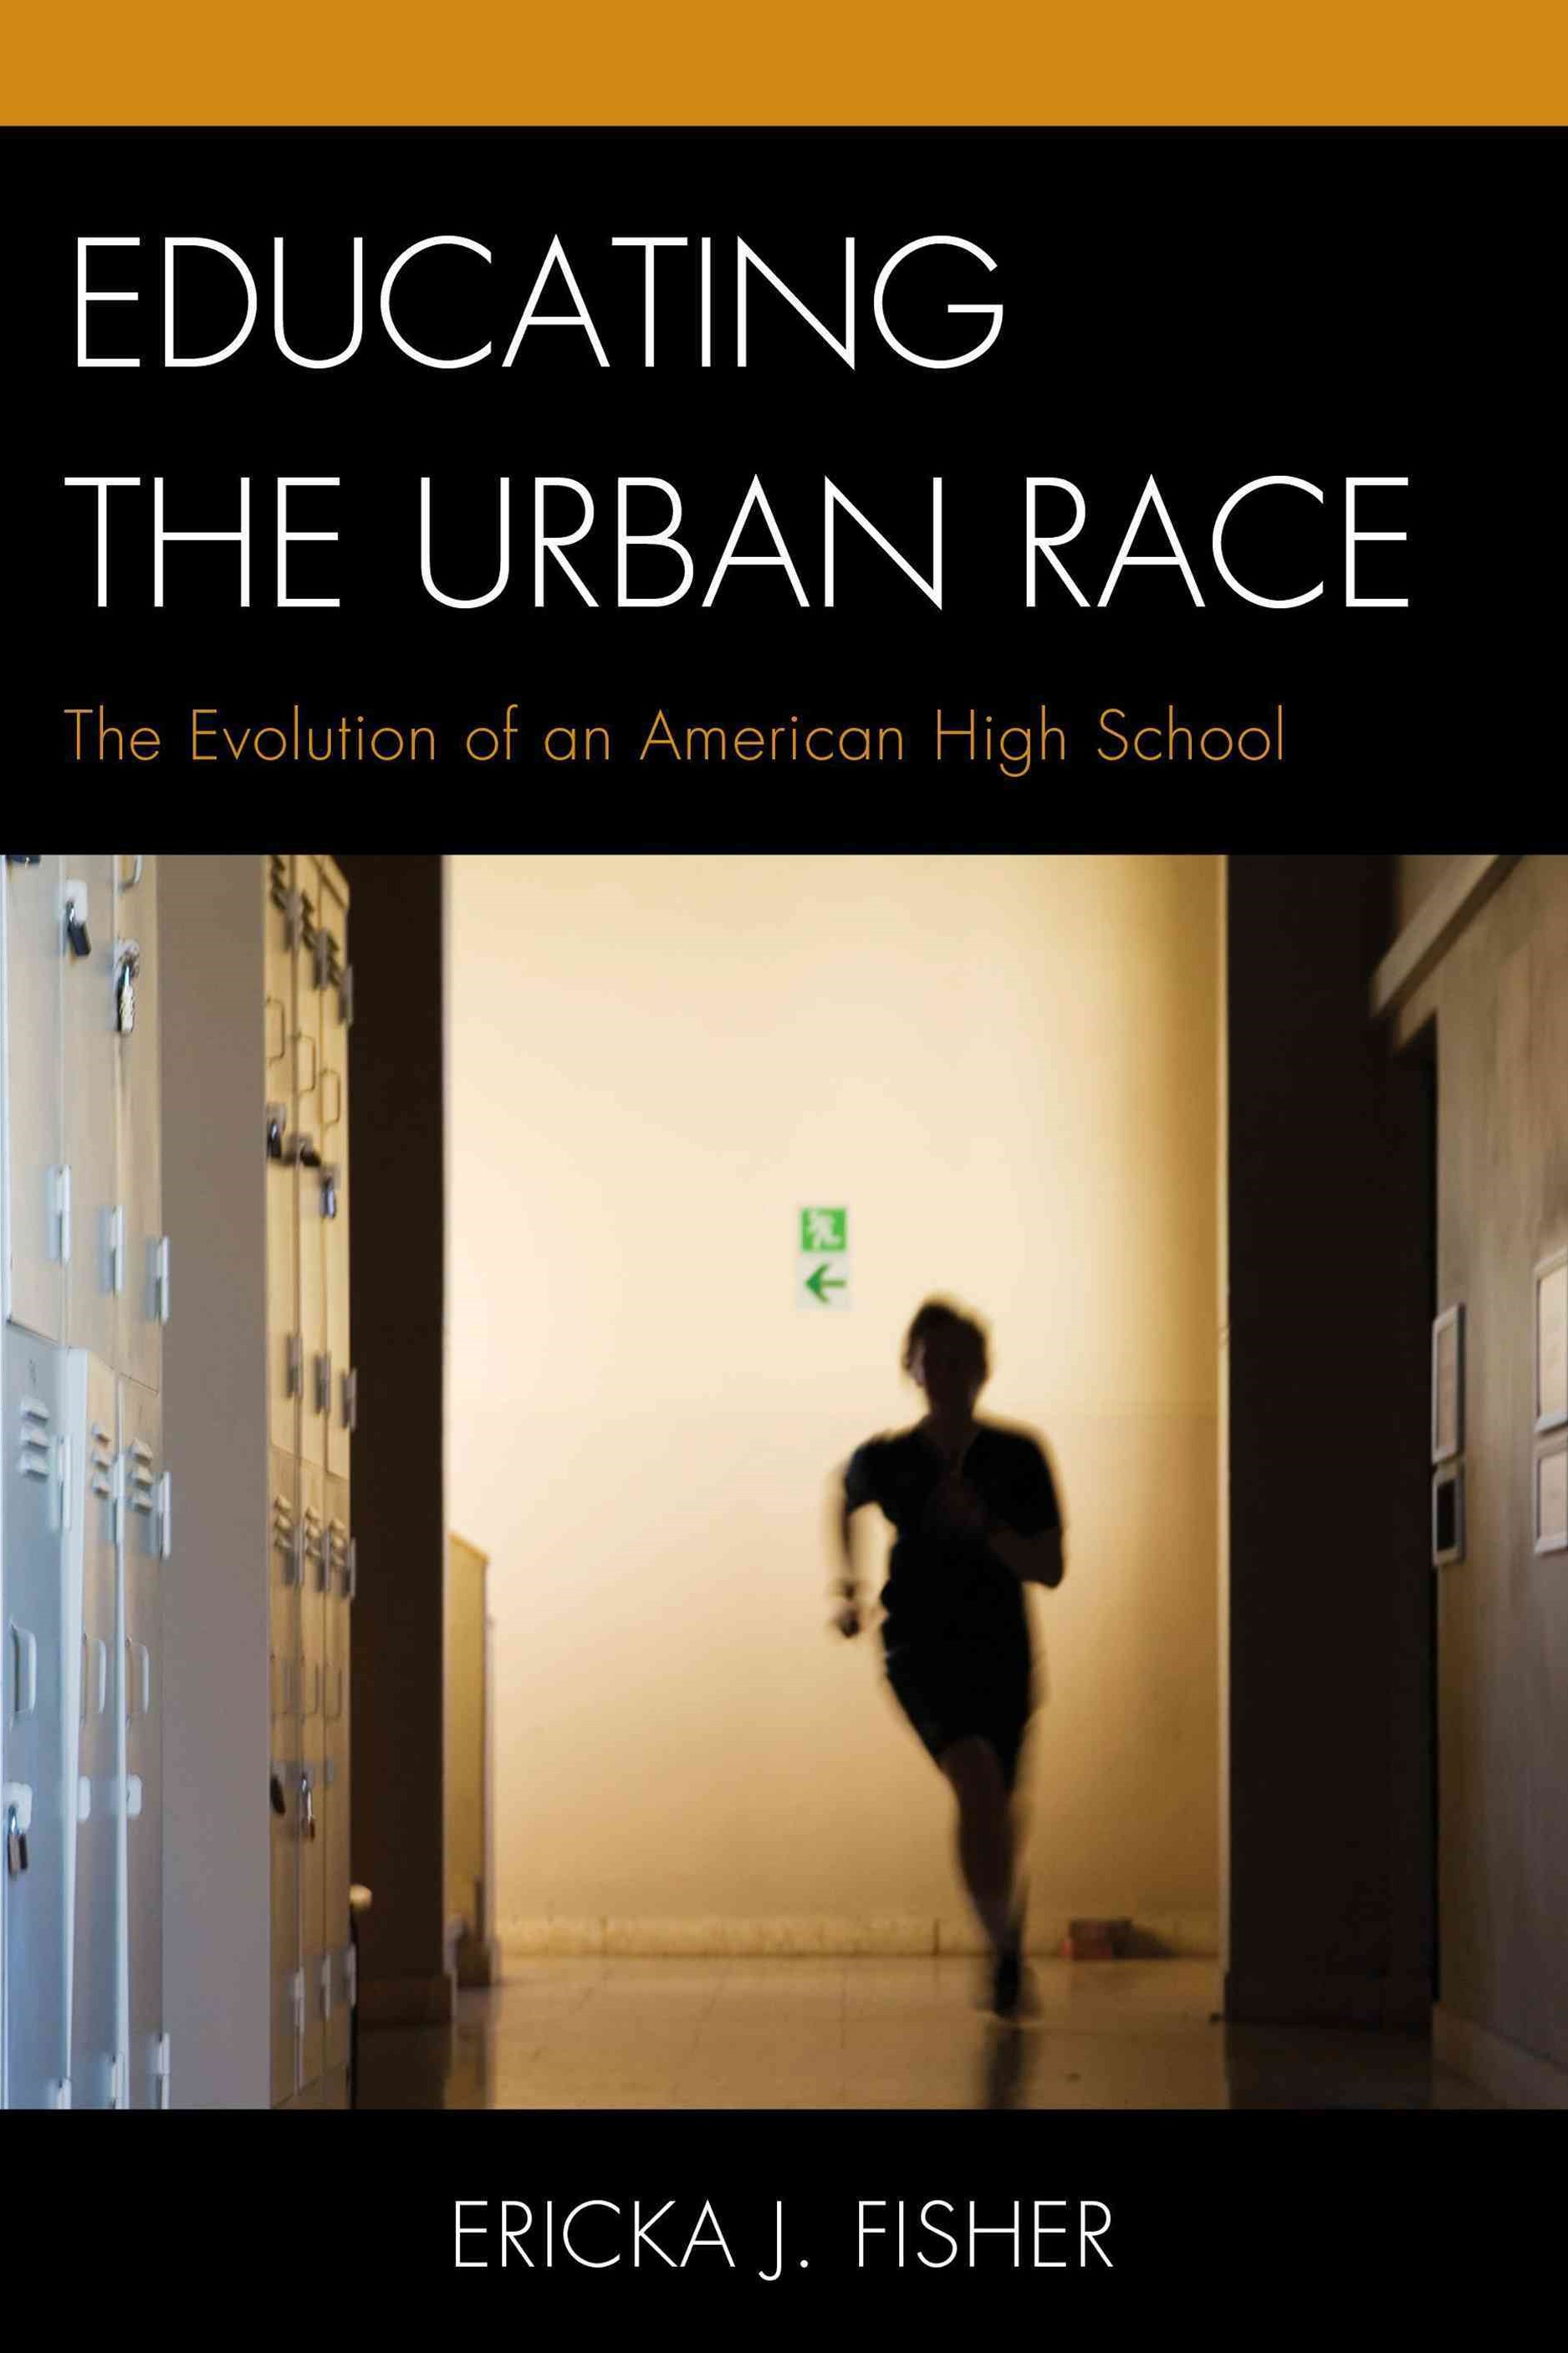 Educating the Urban Race